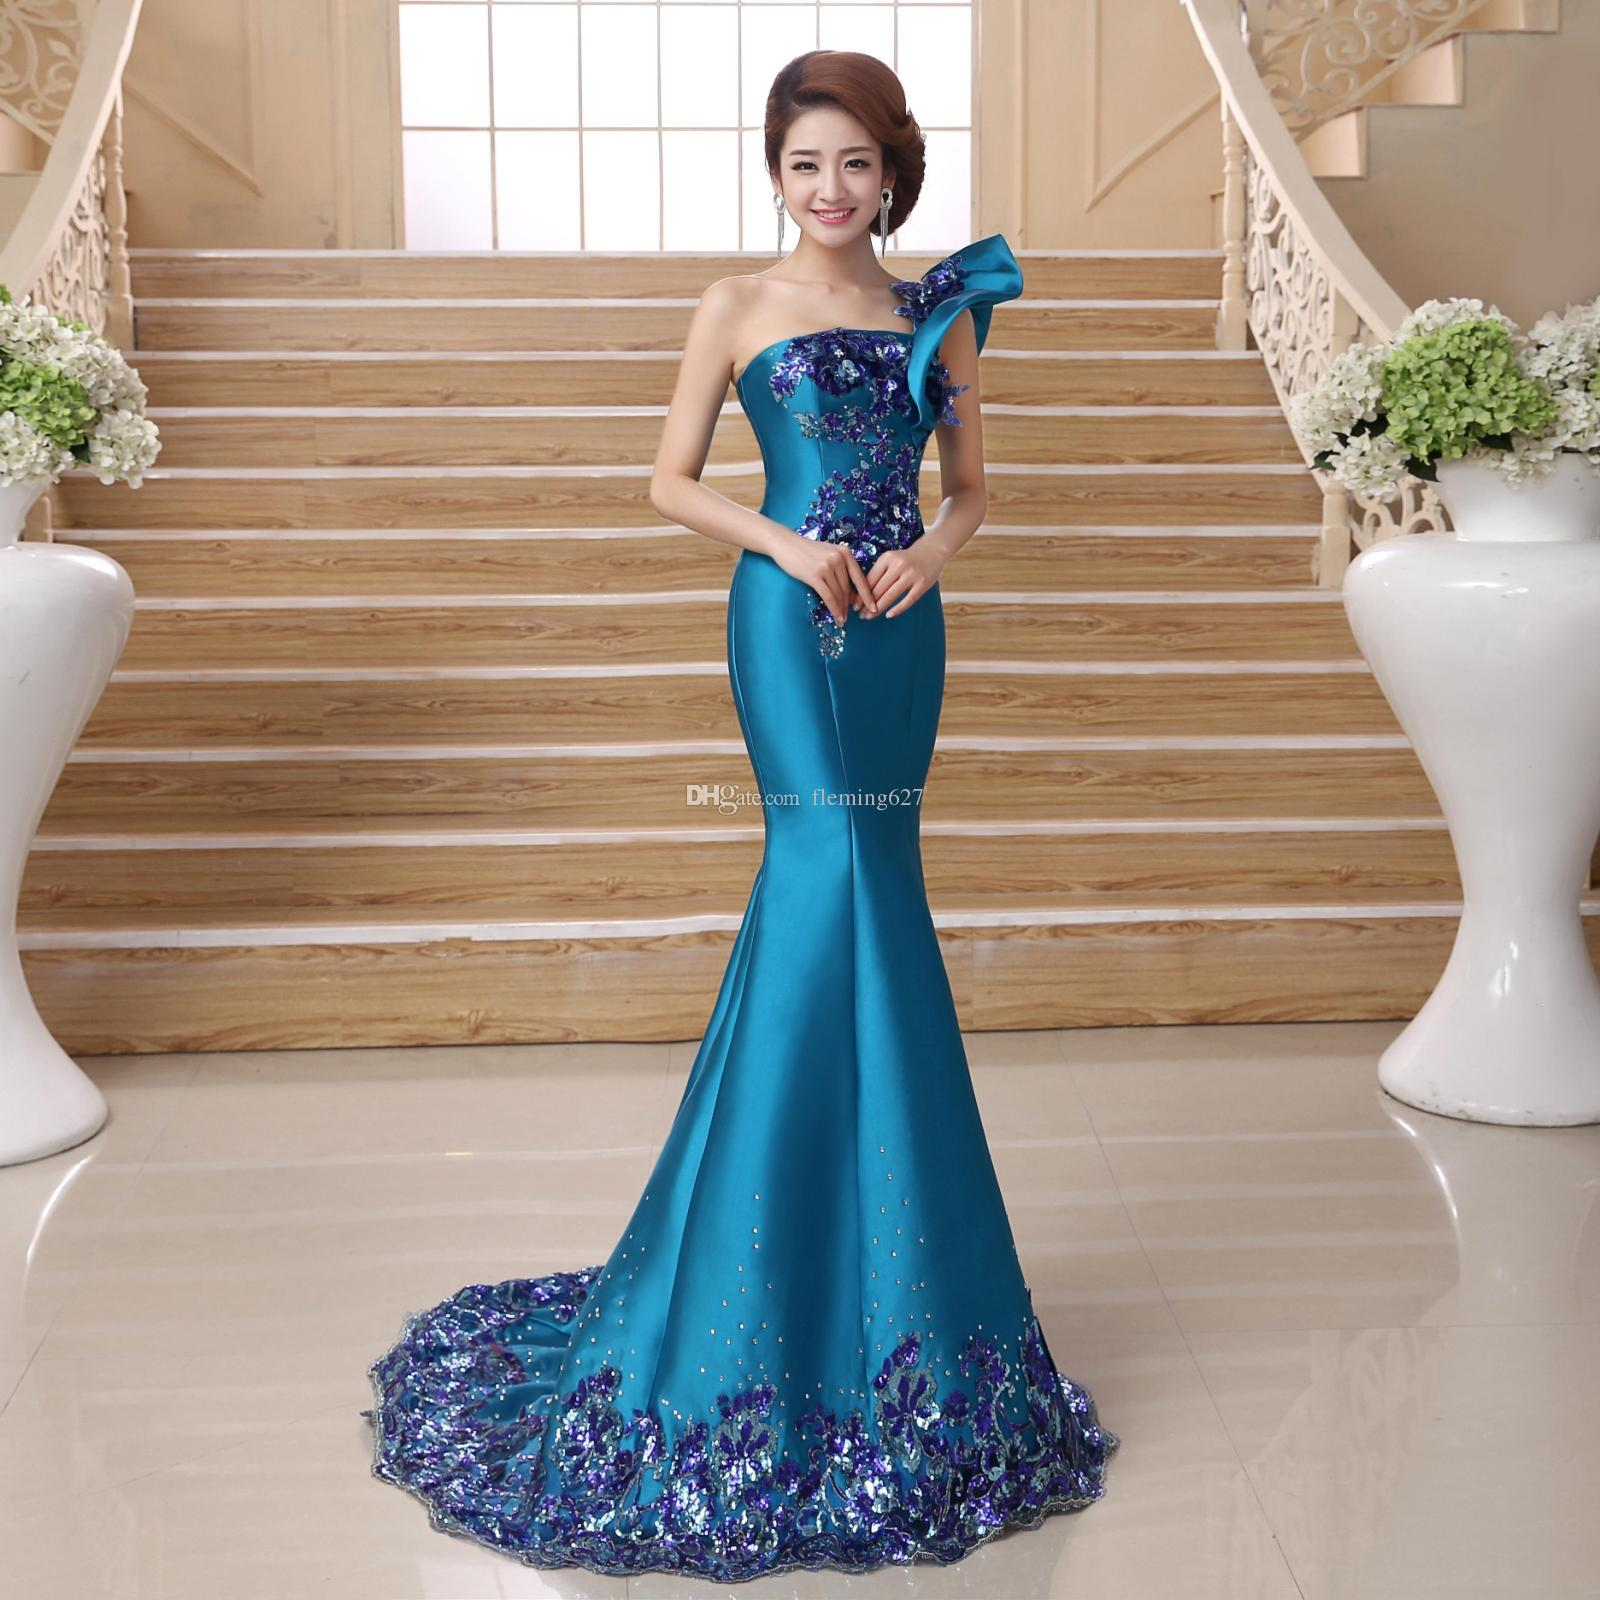 f1742ae8342 2019 New Luxurious Beautiful Summer Dress Long Chinese Style Gown Sexy One  Shoulder Female Vestido Blue Qipao Gown Mermaid Women Party Dress From  Fleming627 ...